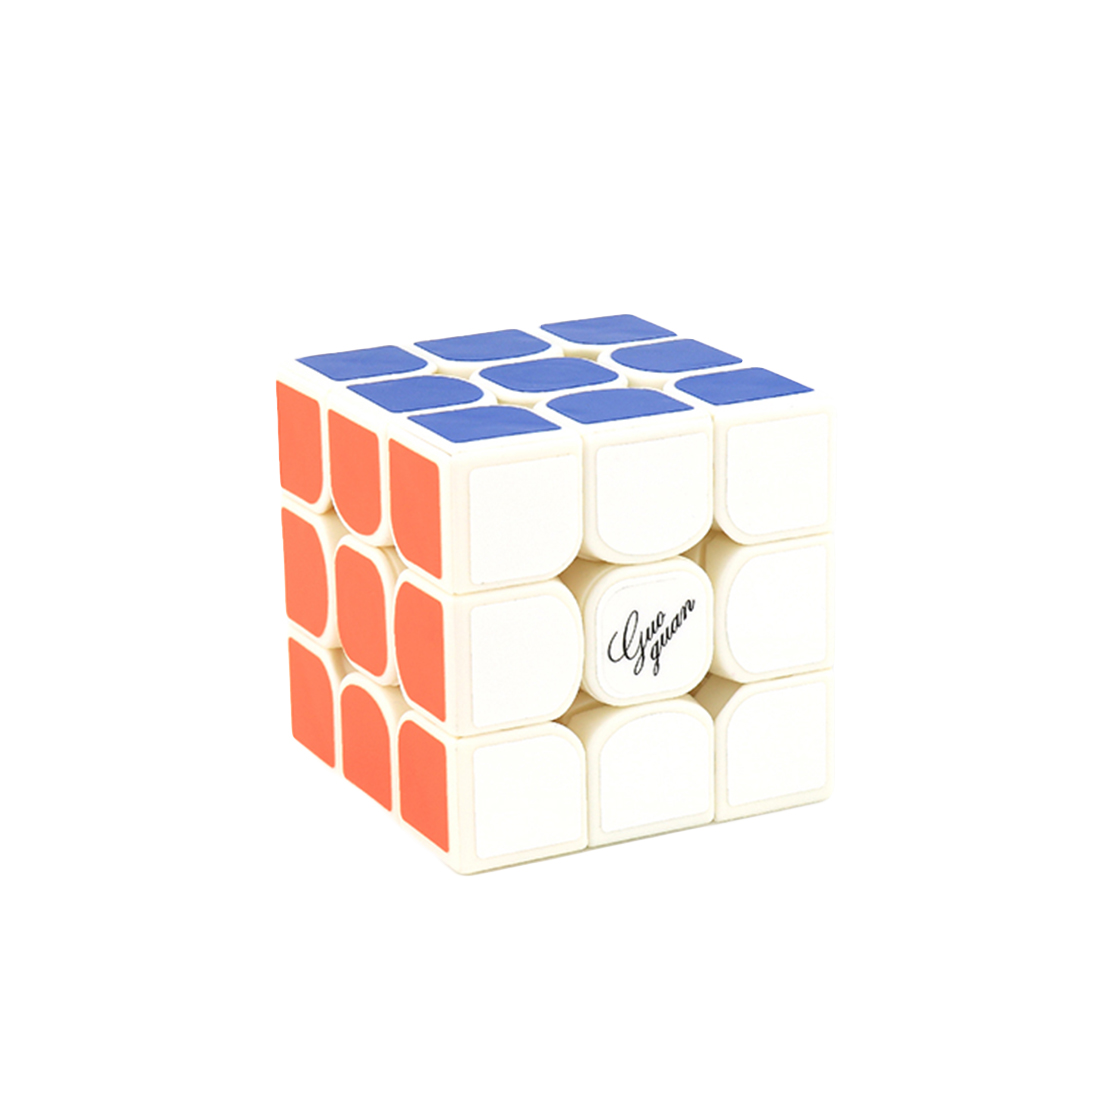 GuoGuan Yuexiao PRO Magic Cube 3x3x3 Magic Cube Speedcubing Puzzle Toy cube stereo 160 hpa 27 5 pro